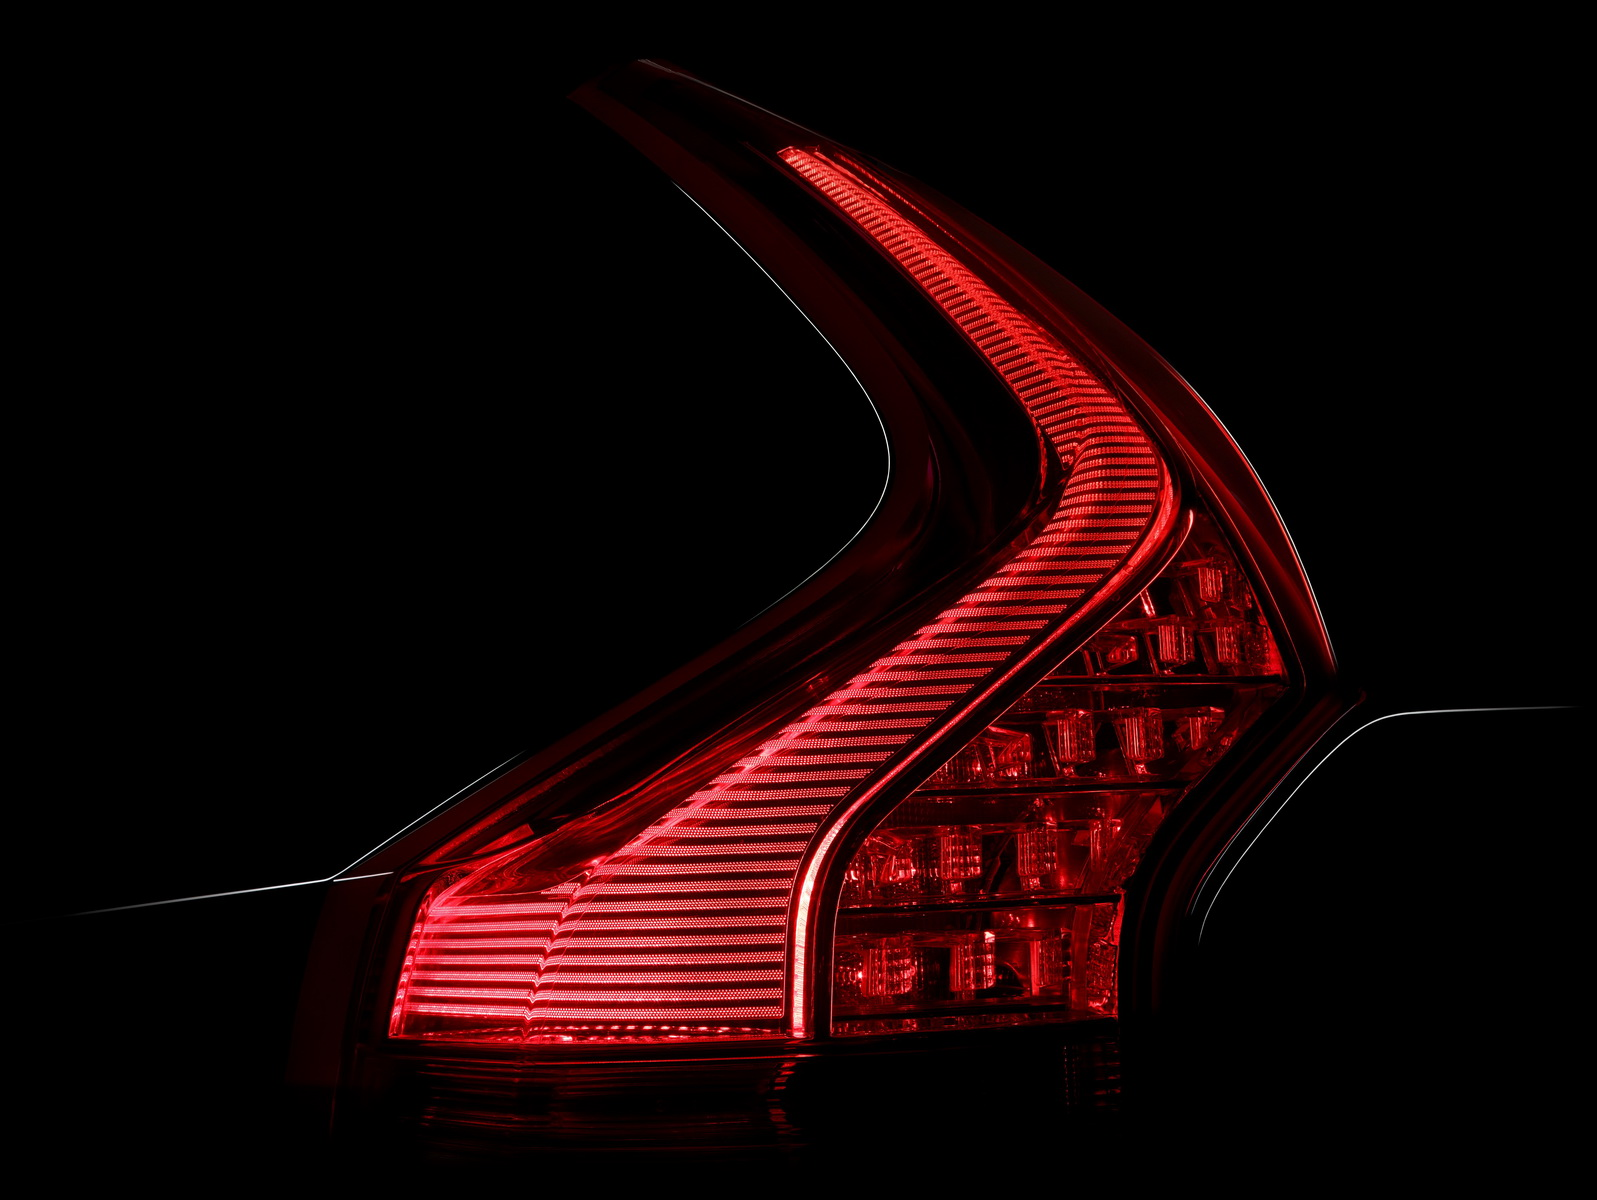 The new tattoo-like rear lights are an important design signature that will be mirrored across the range.